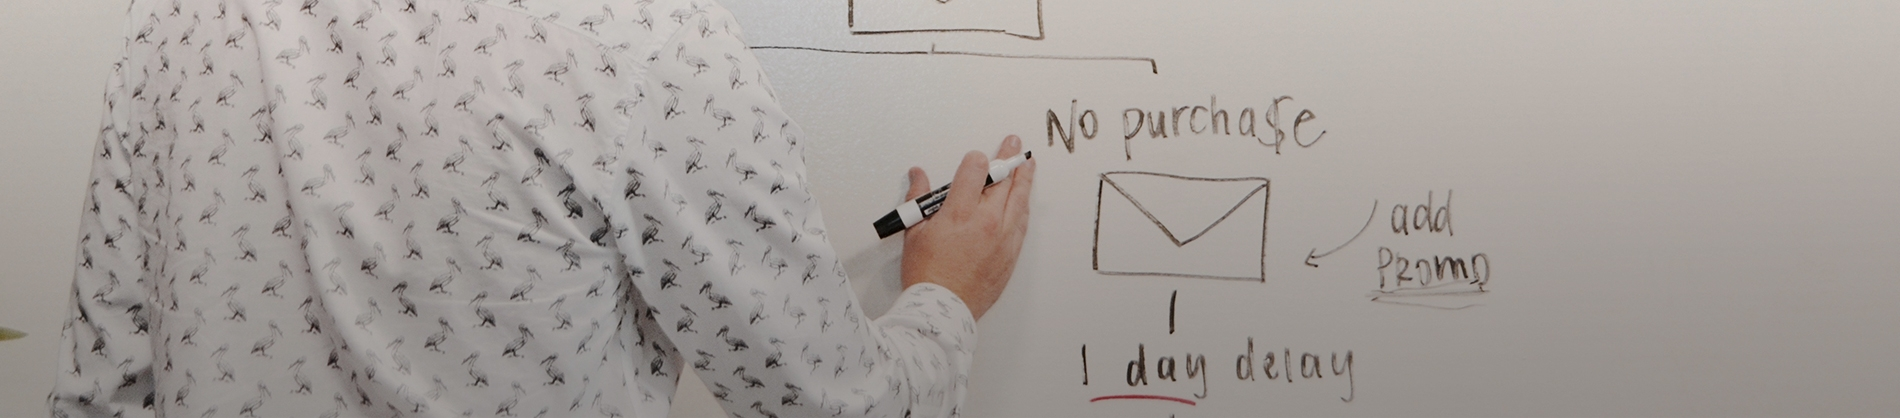 A man writing on a whiteboard